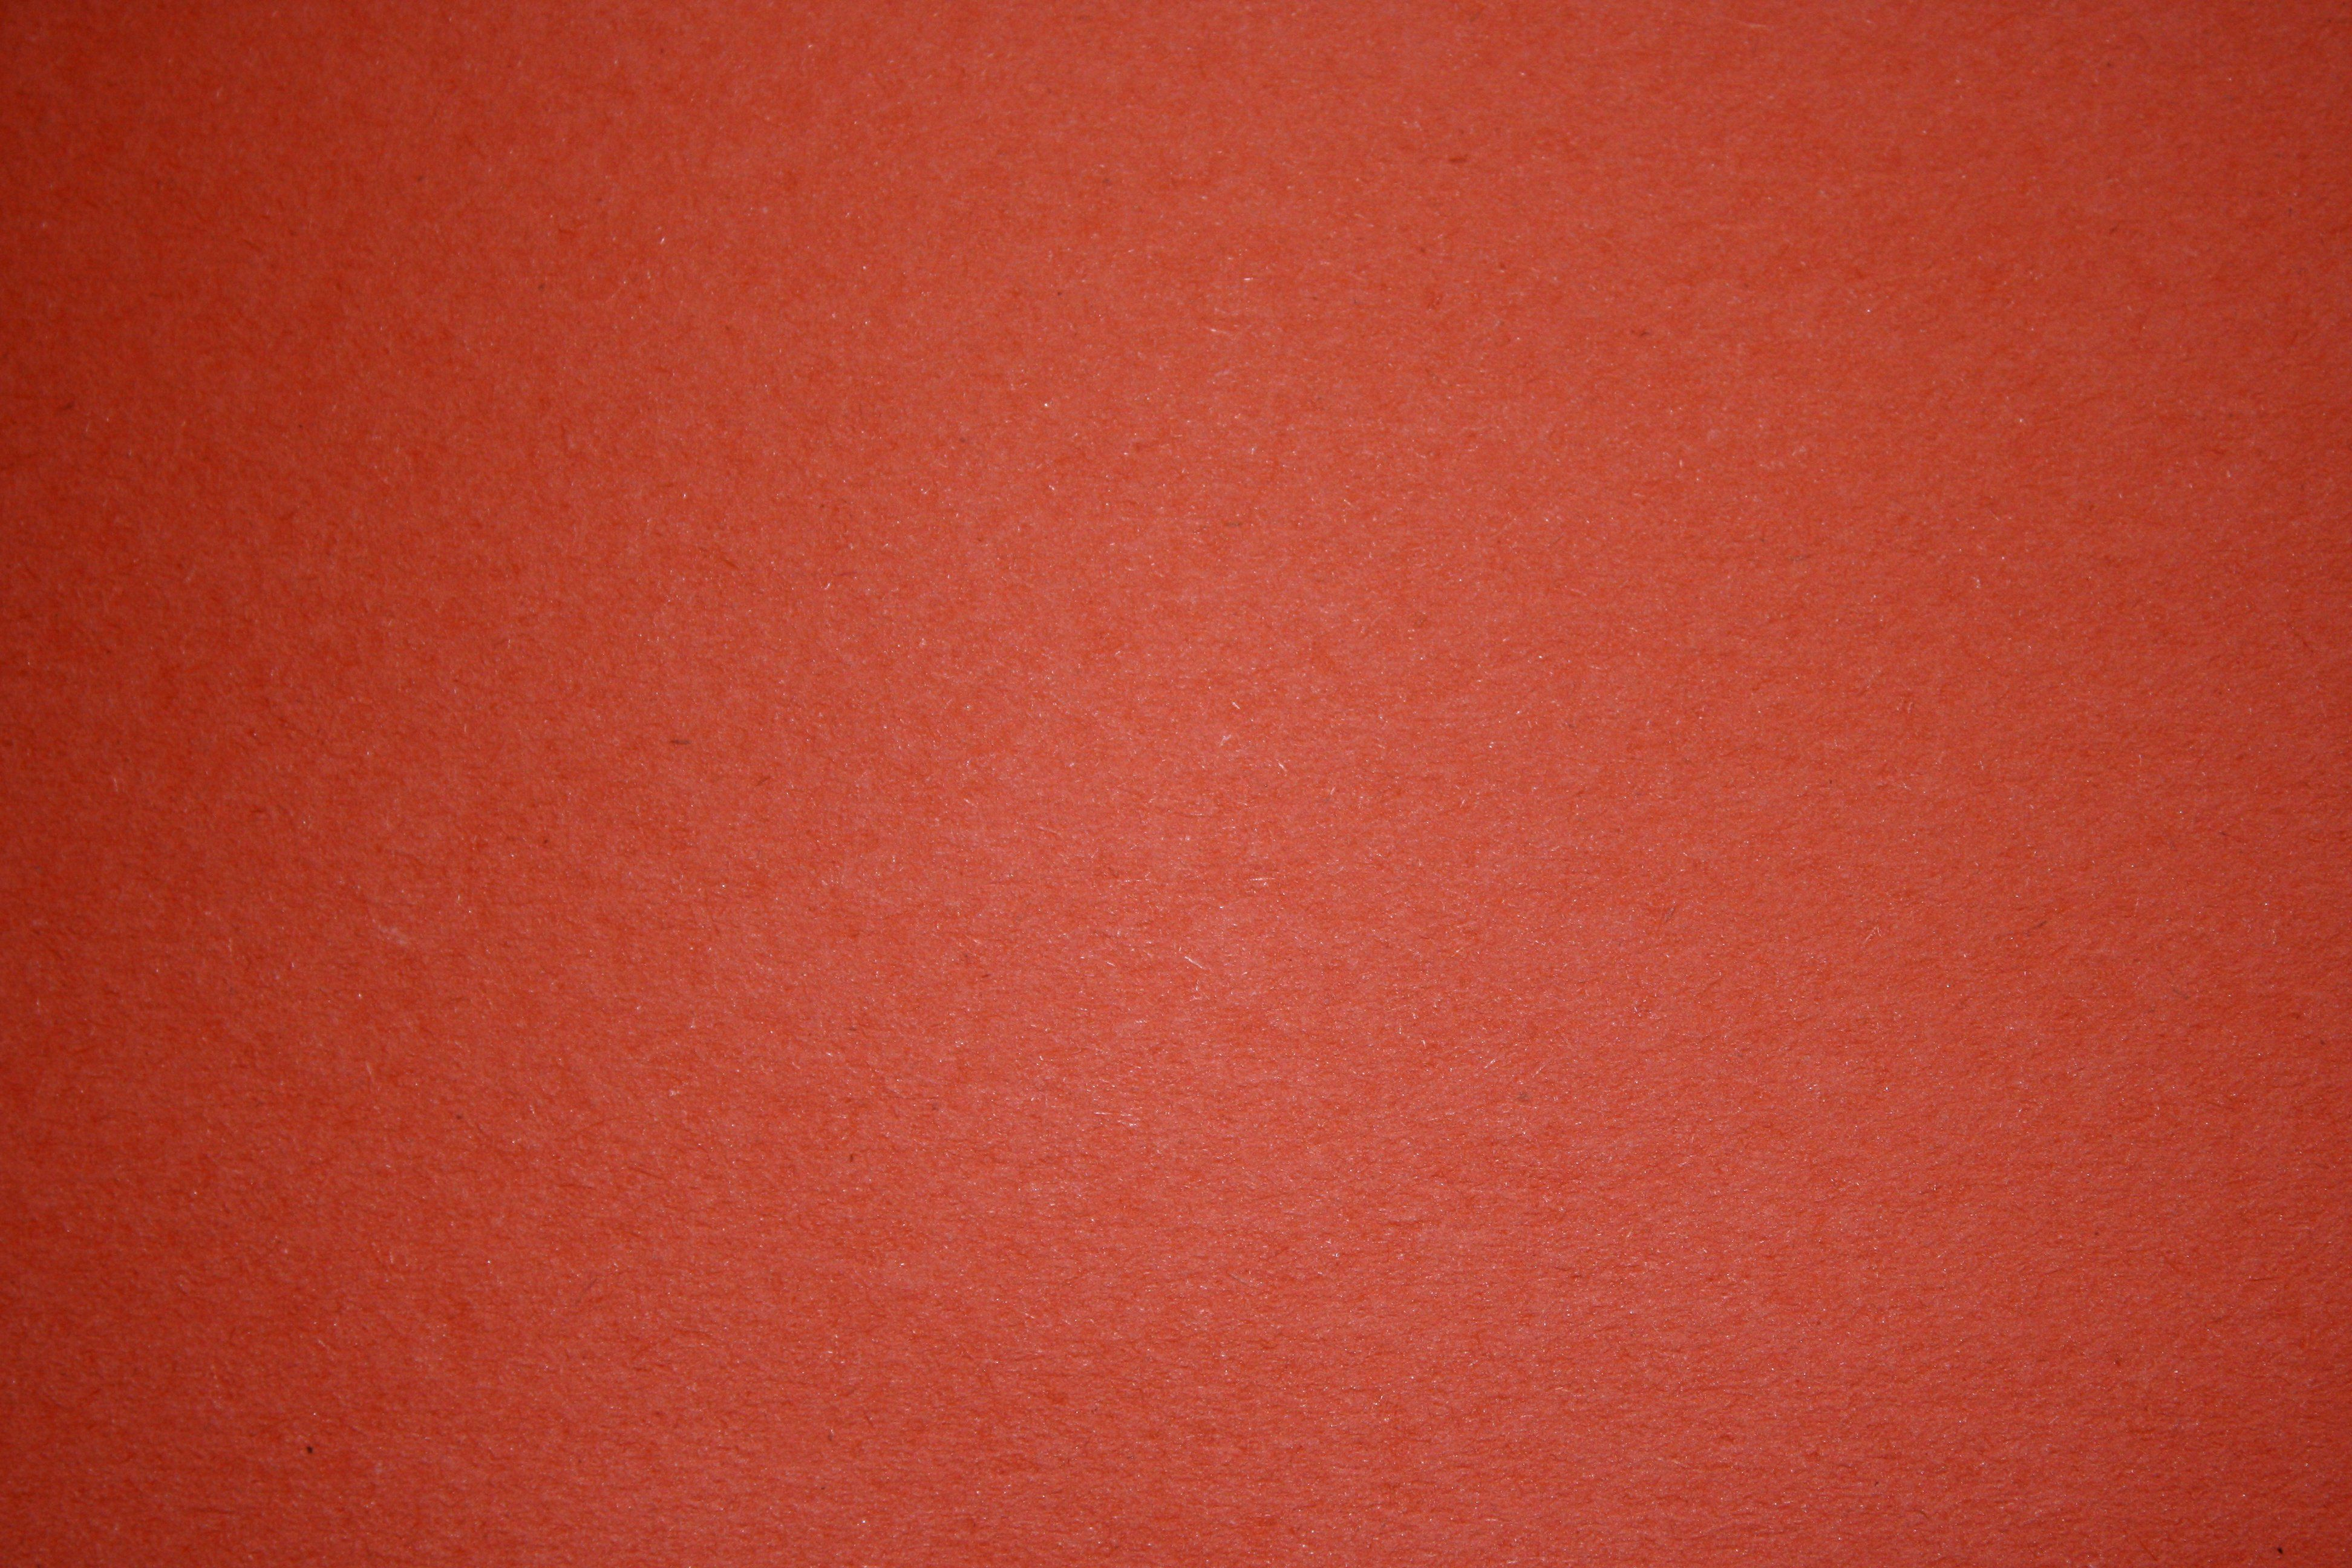 Red plastic texture